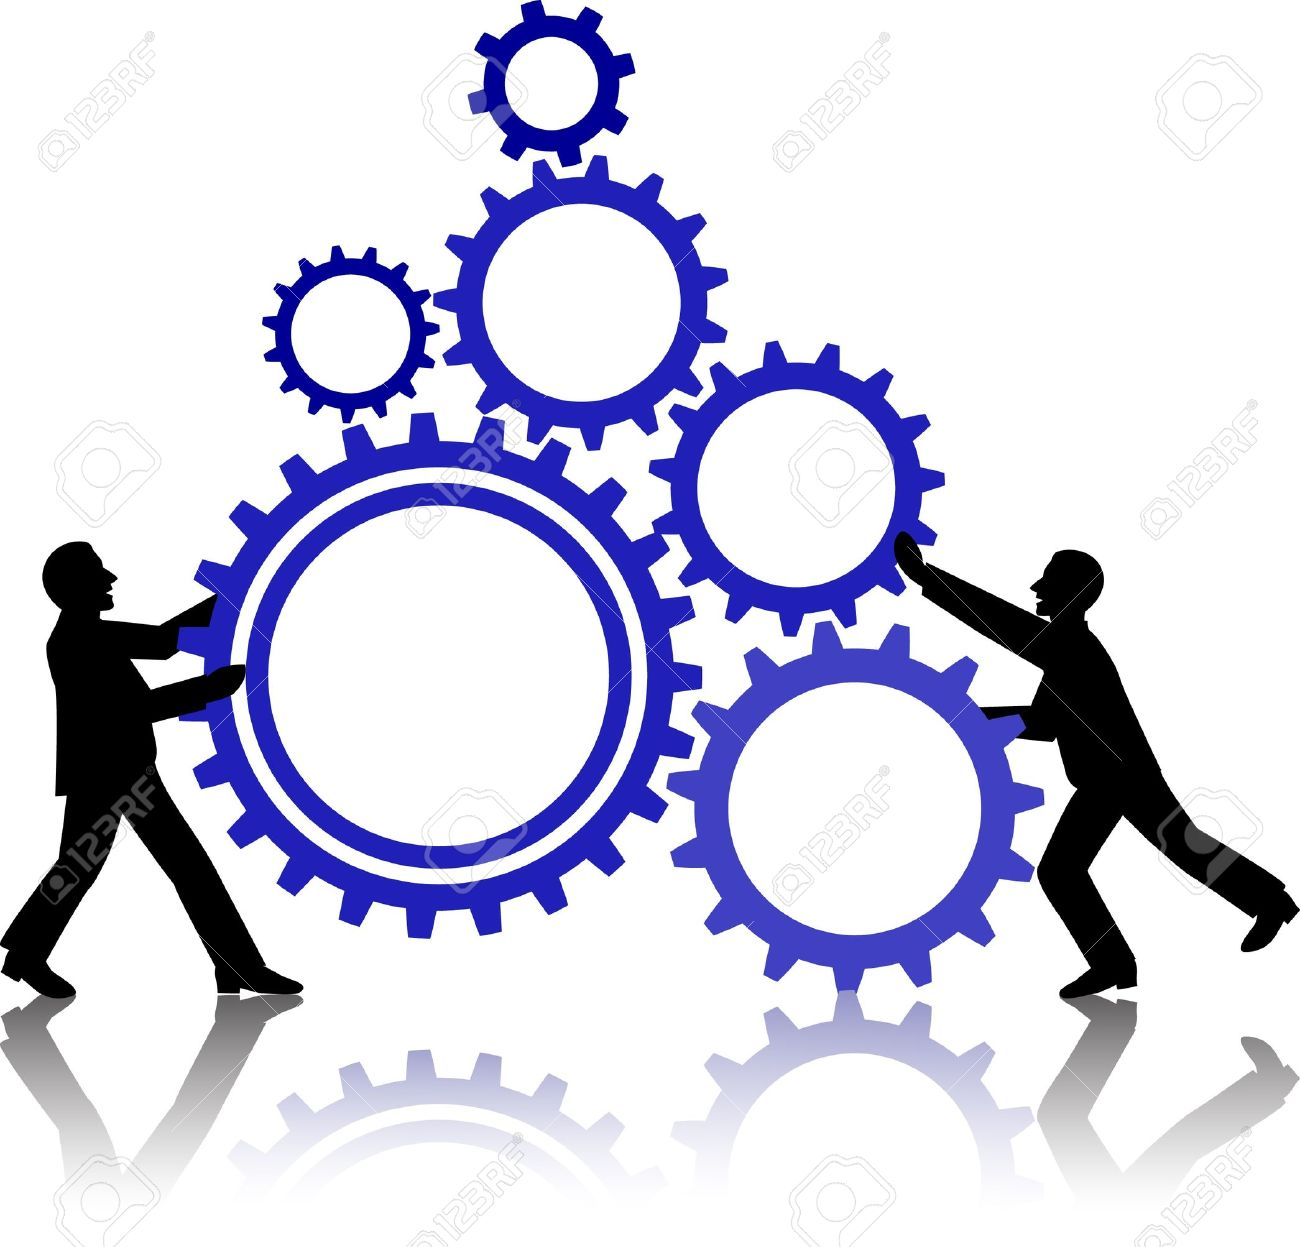 illustration of business people working together royalty free rh 123rf com